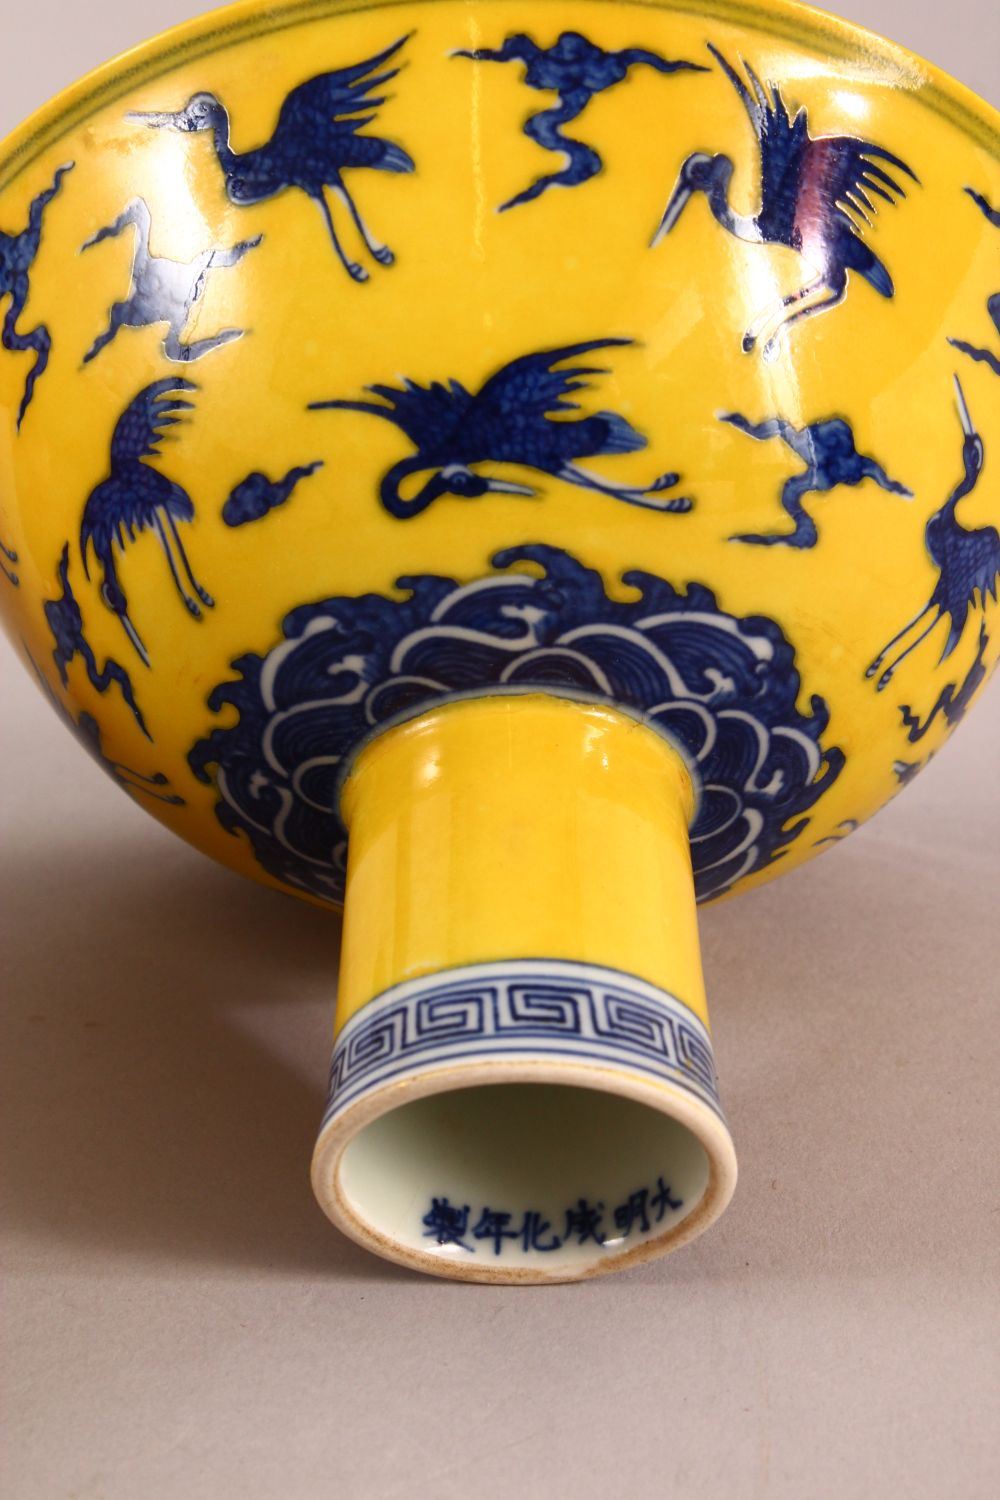 A CHINESE YELLOW GROUND PORCELAIN STEM CUP, decorated with cranes in flight, the interior of the - Image 5 of 6